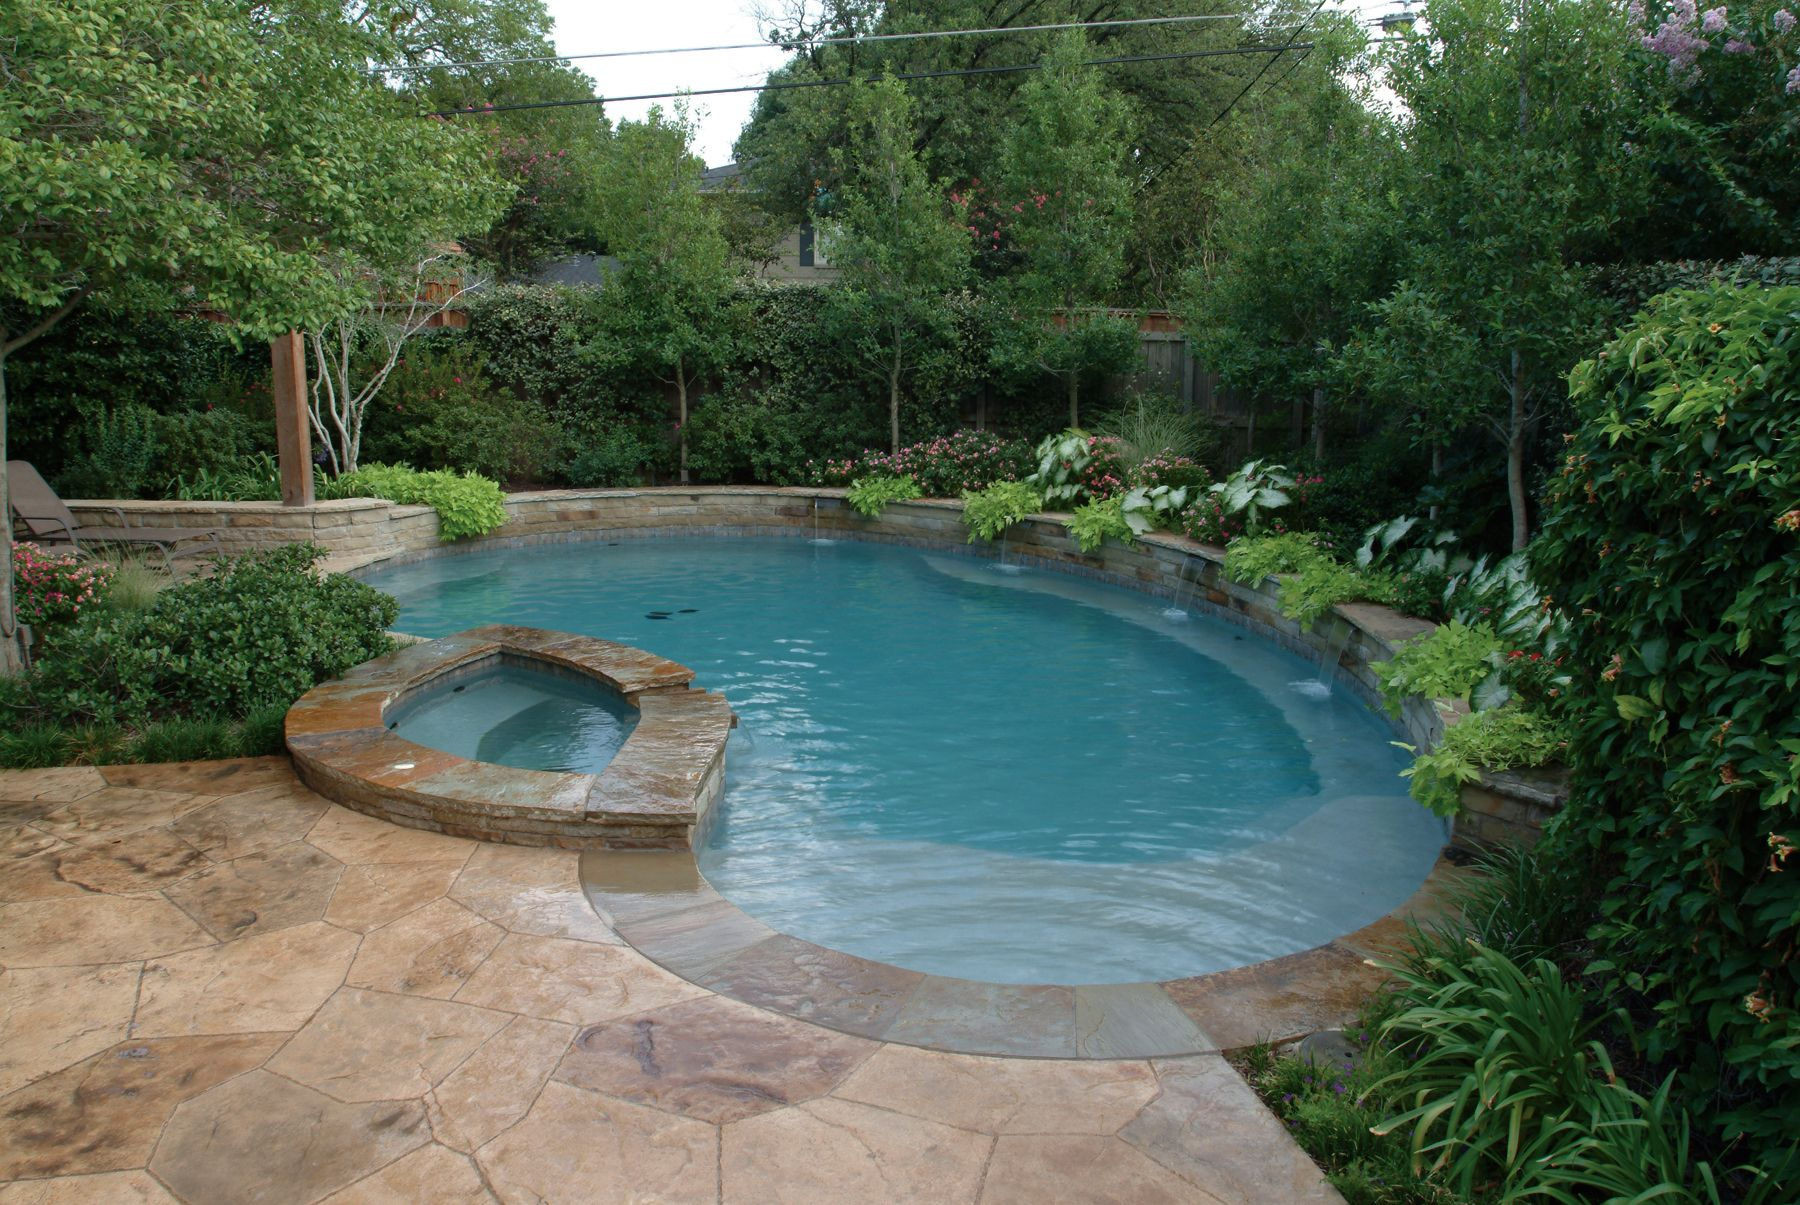 Backyard Pool Designs Landscaping Pools small pool with waterfall designs | free form pool with lush design